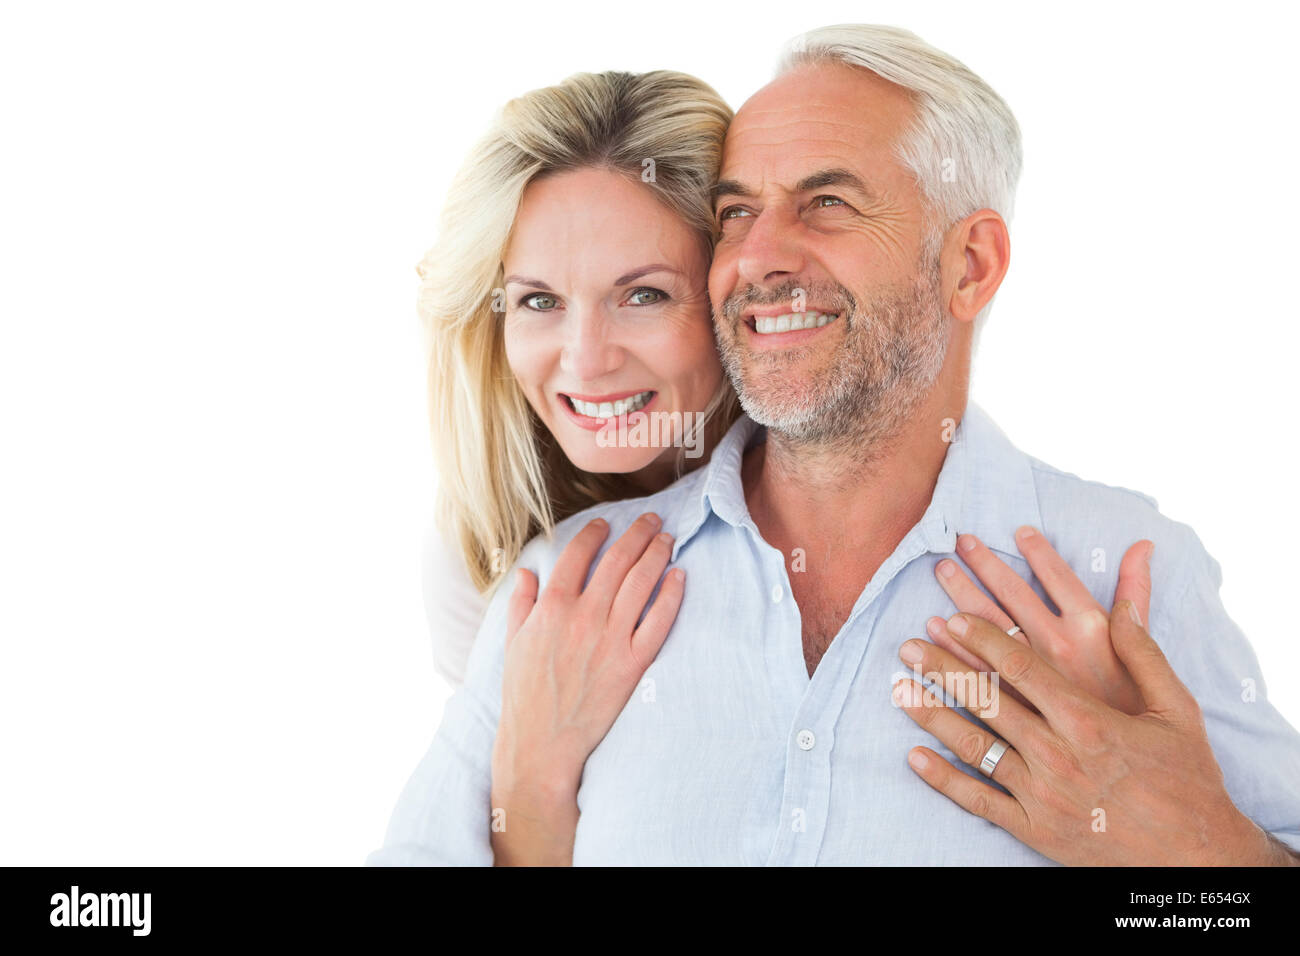 Smiling couple embracing with woman looking at camera Stock Photo